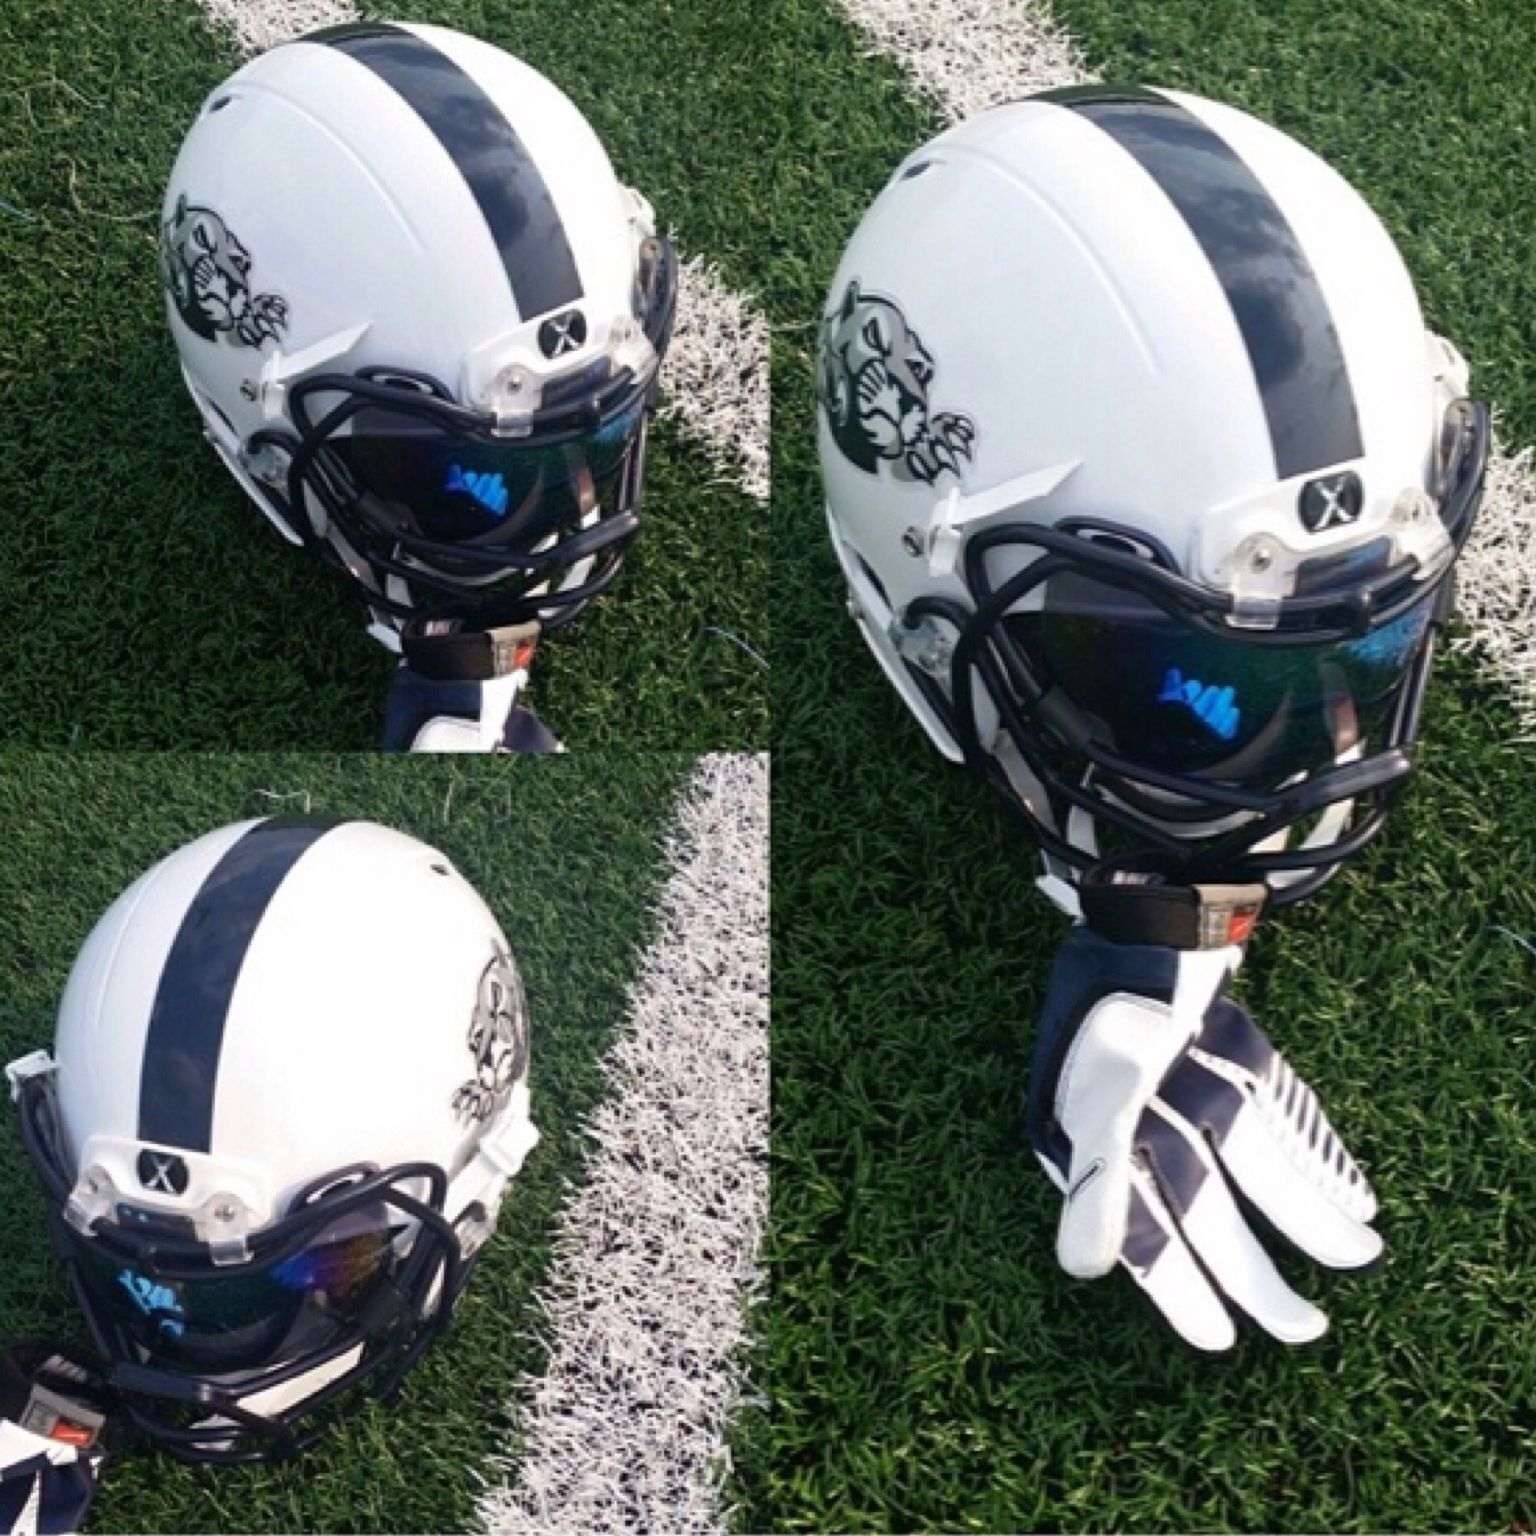 Check out the football helmet setup for the leyden lions